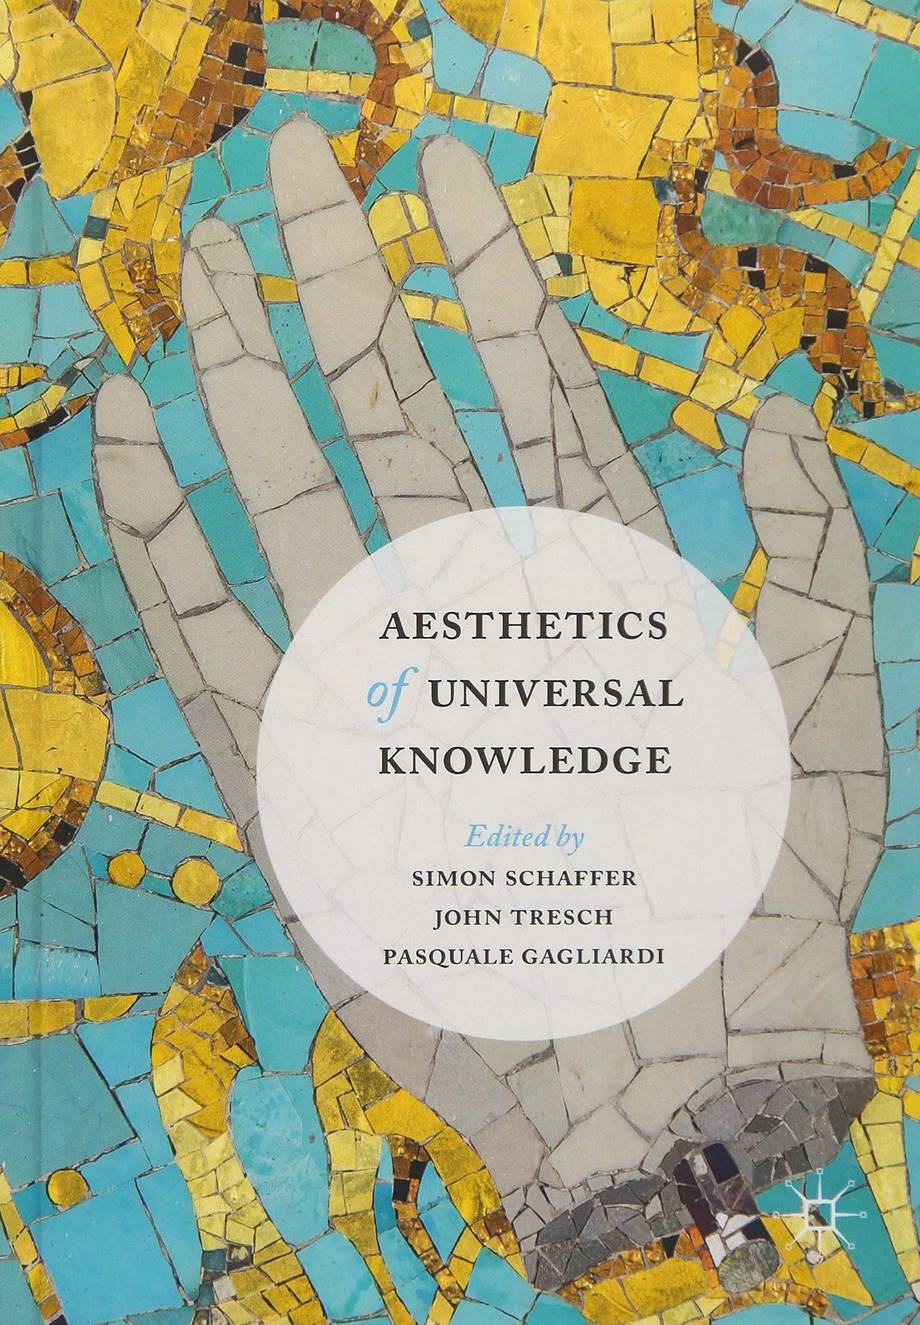 Aesthetics of Universal Knowledge